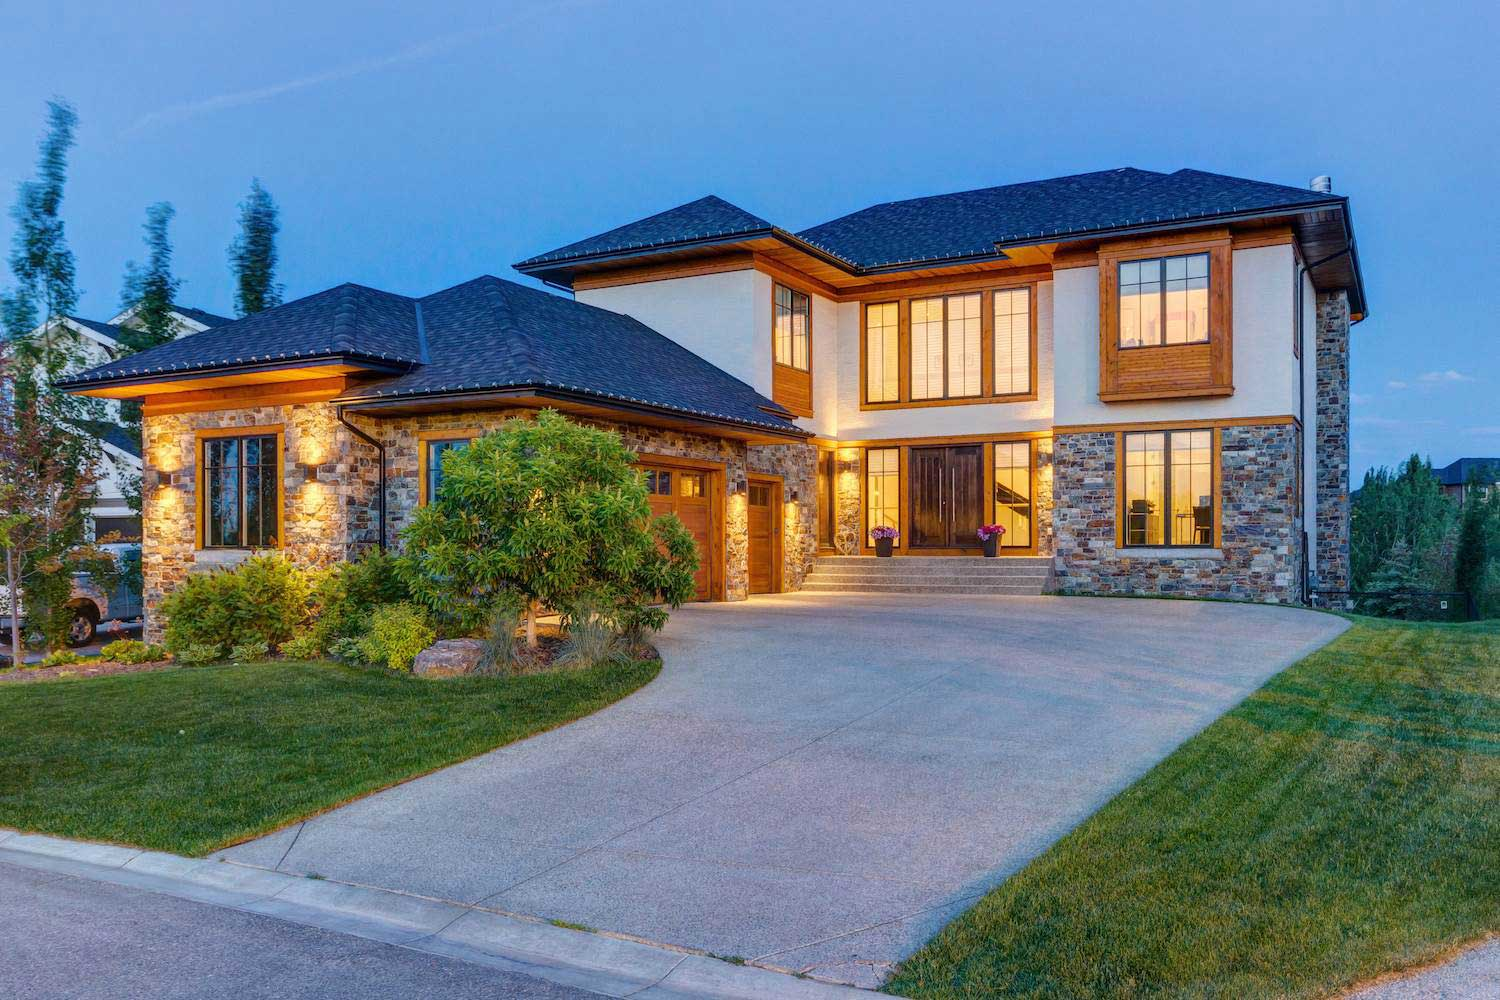 <b>Calgary, Alberta, Canada</b><br/><i>6 Bedrooms, 4,221 sq. ft.</i><br/>Heritage Pointe estate home